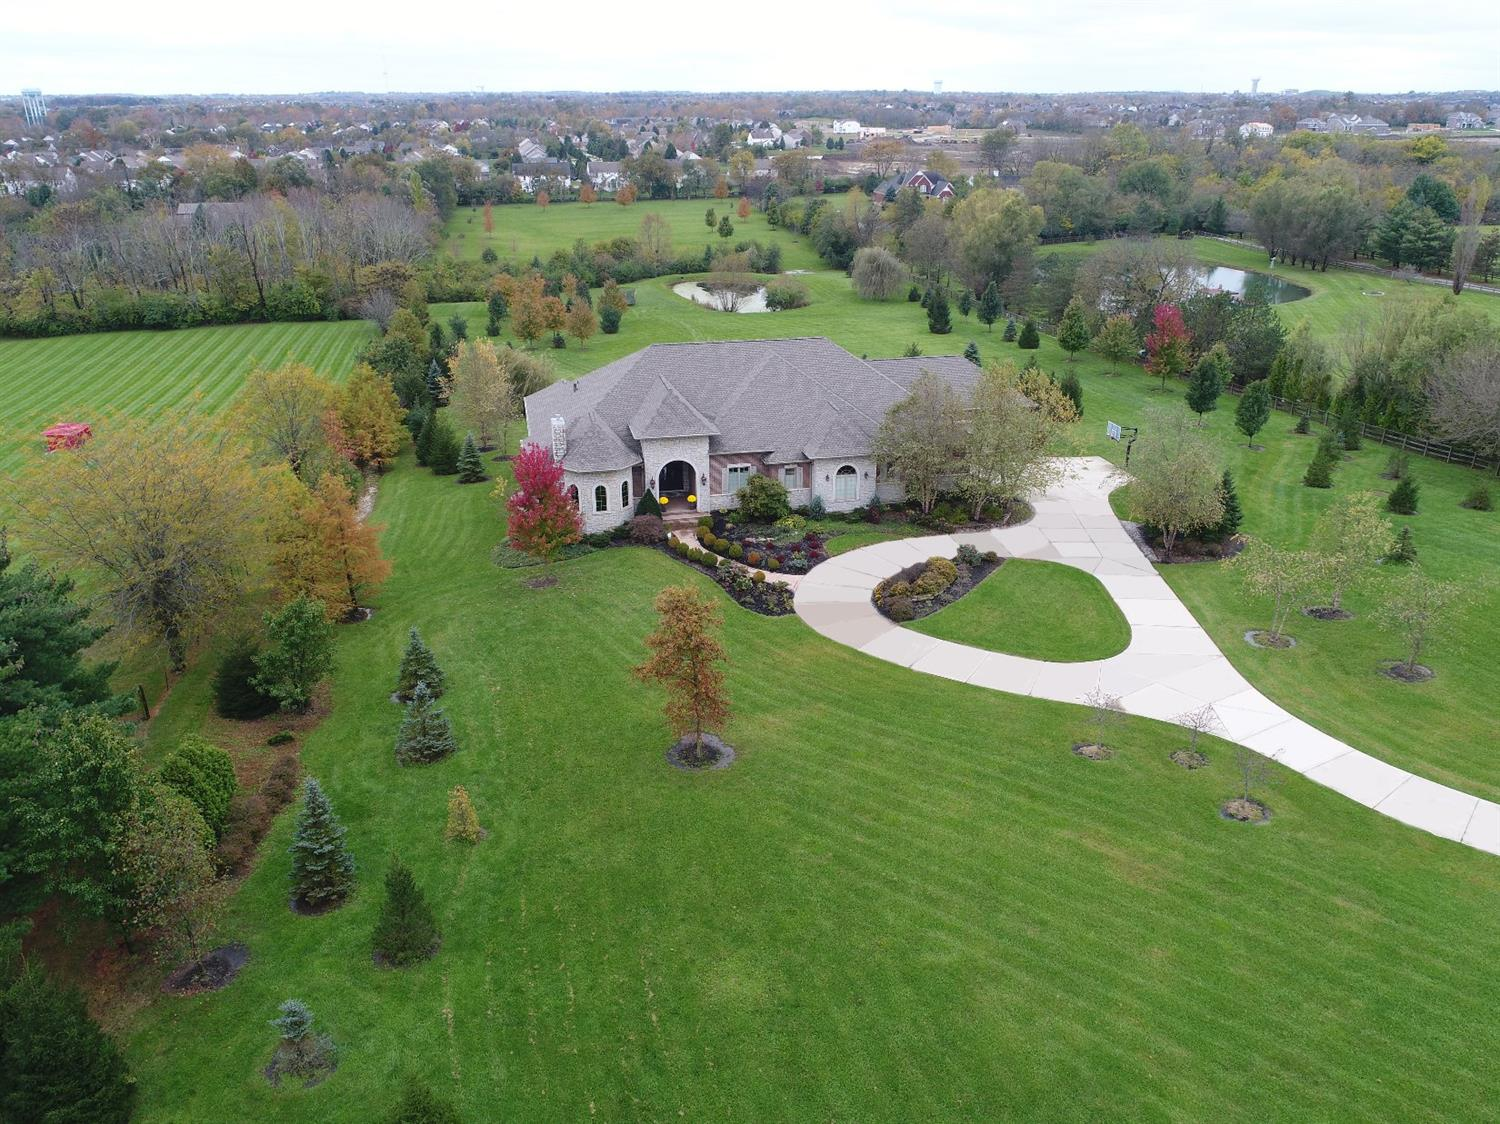 Rare Find in Mason! Amazing 8.8 Acre Oasis*Truly Custom Ranch Home with Lower Level above grade for walkout to desired upper & lower Outdoor Entertaining areas overlooking Lake*7303 SF*4 Car Oversized Garage*Hi End Finishes thru out & so much detail*Convenient to Hwy 75/71-Shops-Hosp-Restr*Offers an Amazing Value that could not be replicated today!